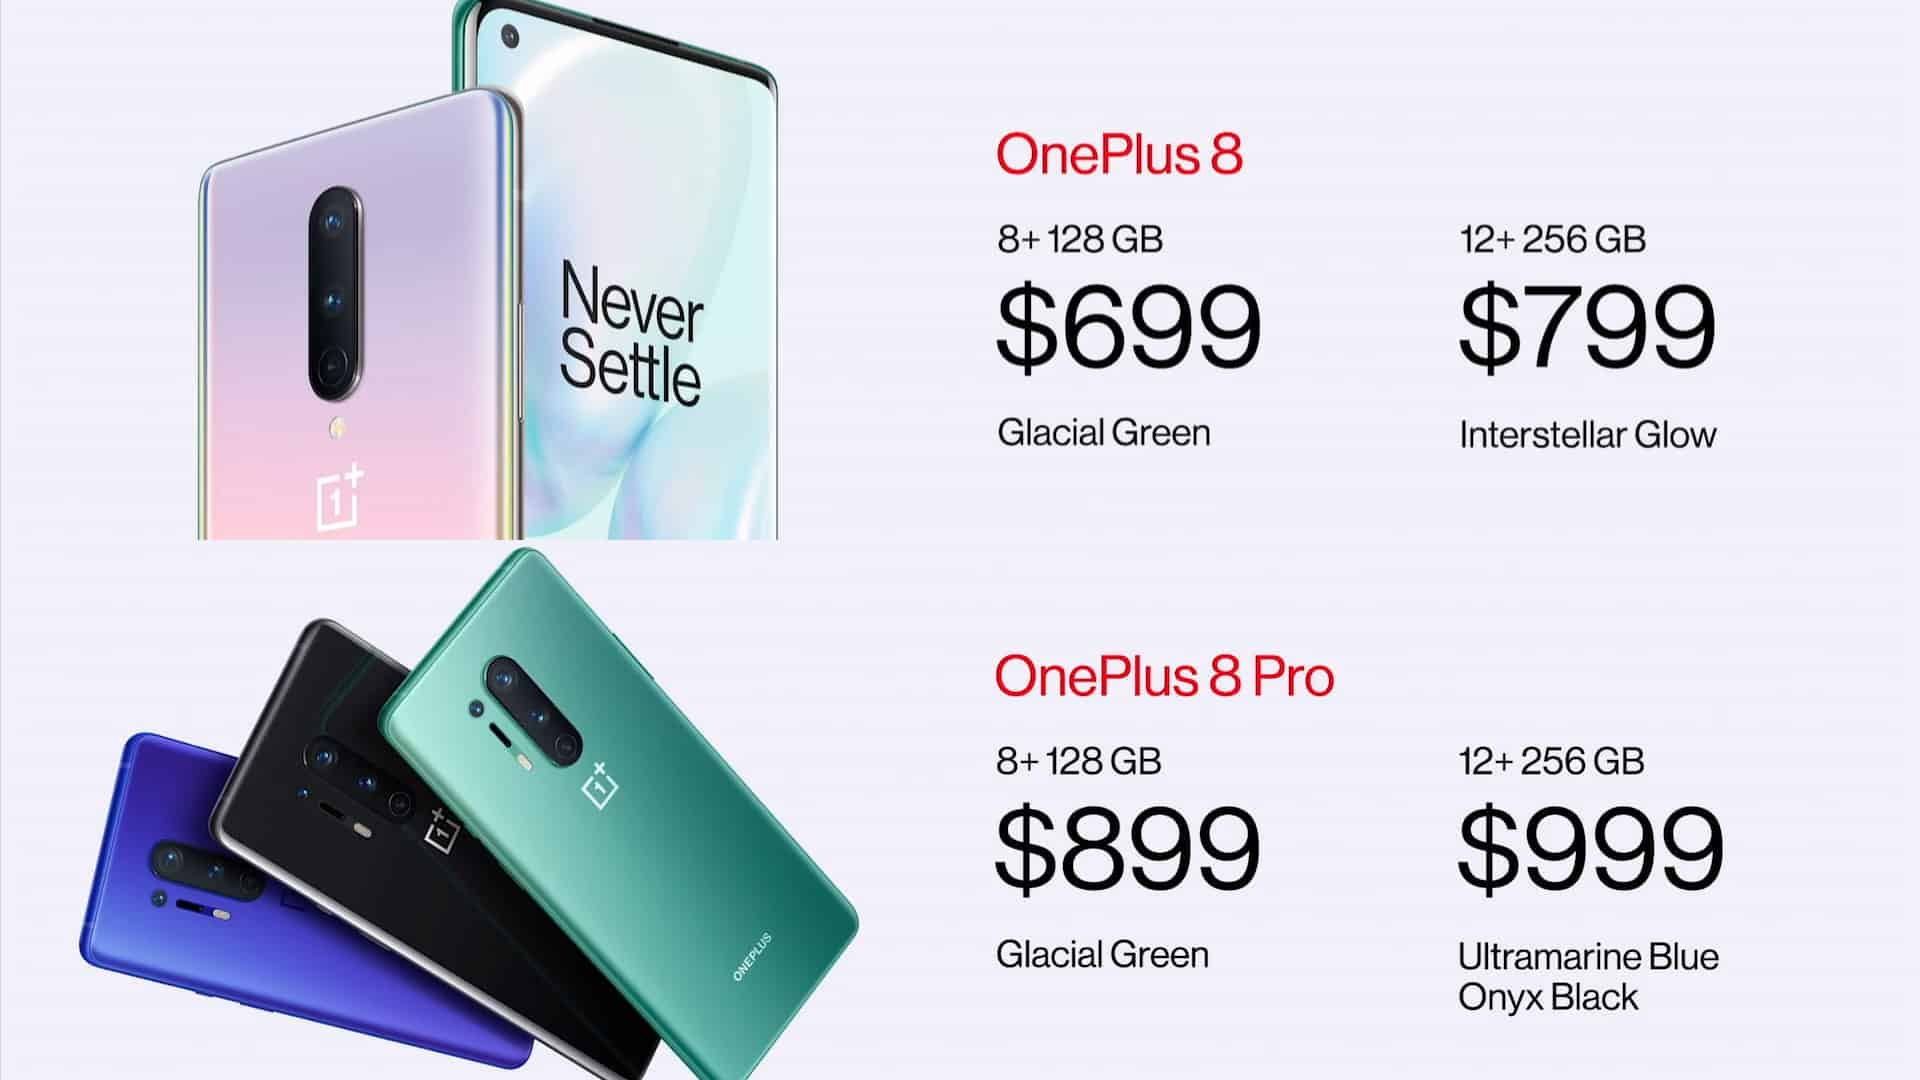 OnePlus 8 and 8 Pro pricing